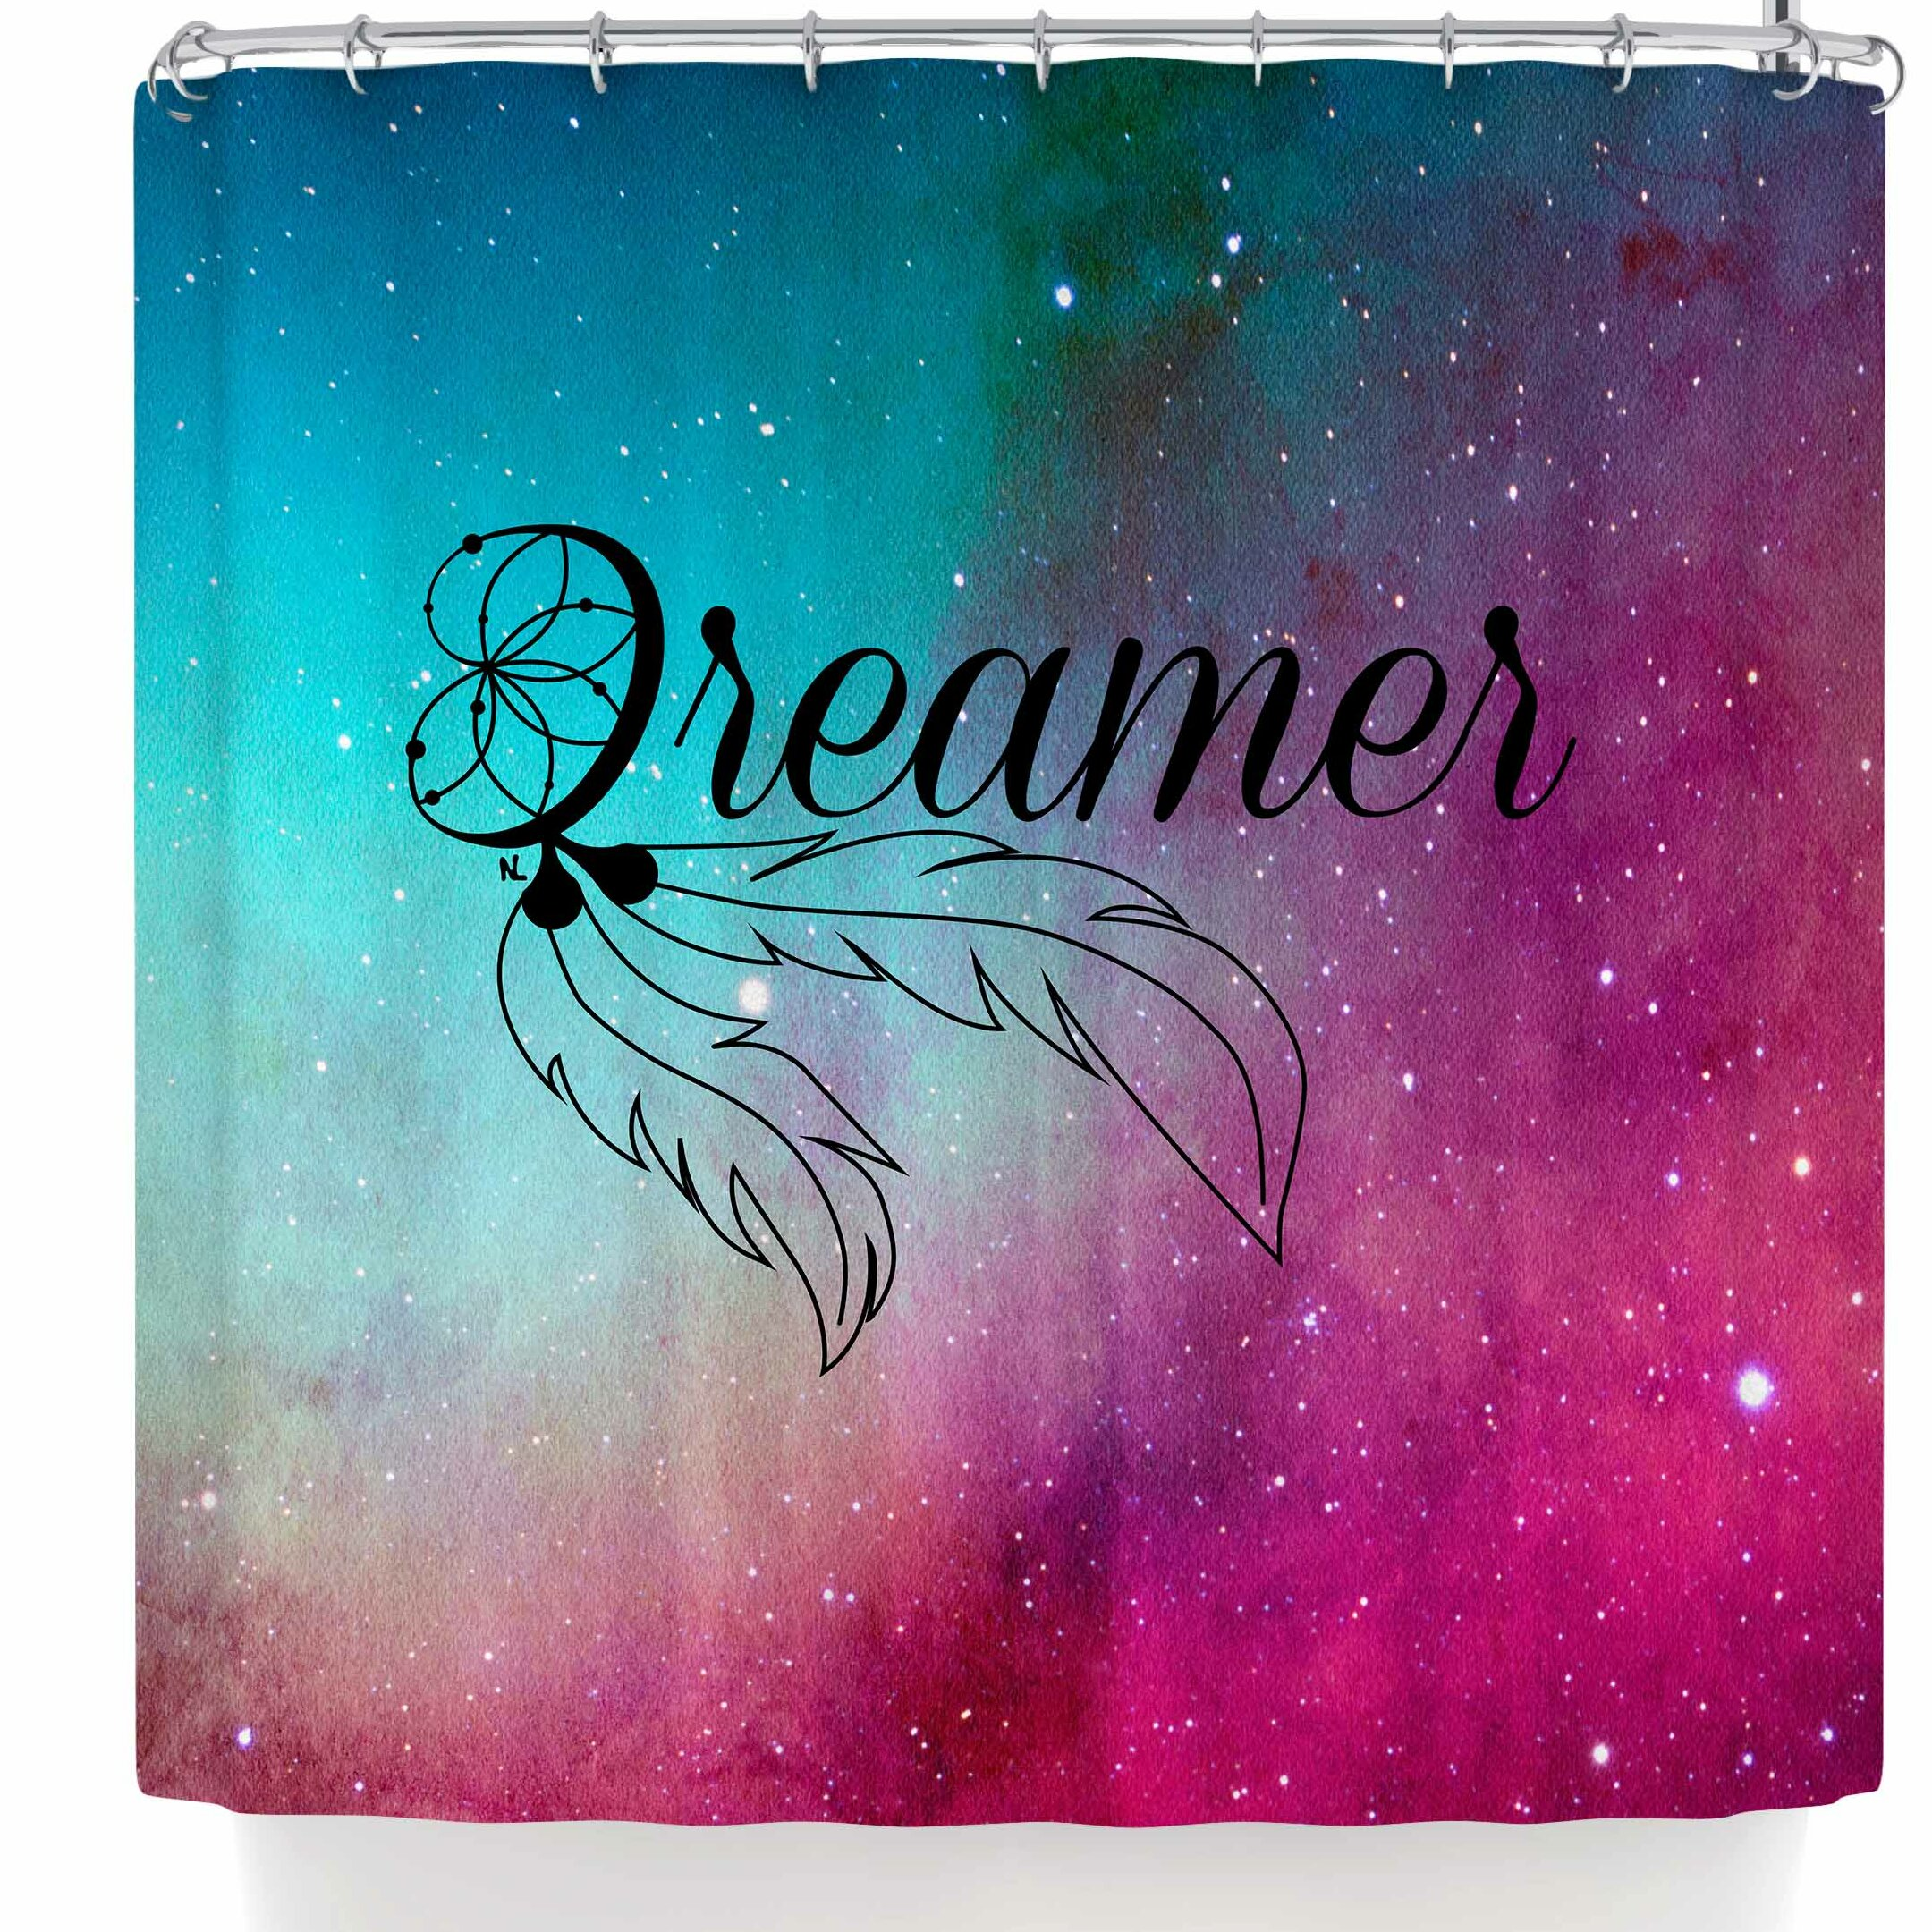 East Urban Home Nl Designs Dream Catcher Galaxy Single Shower Curtain